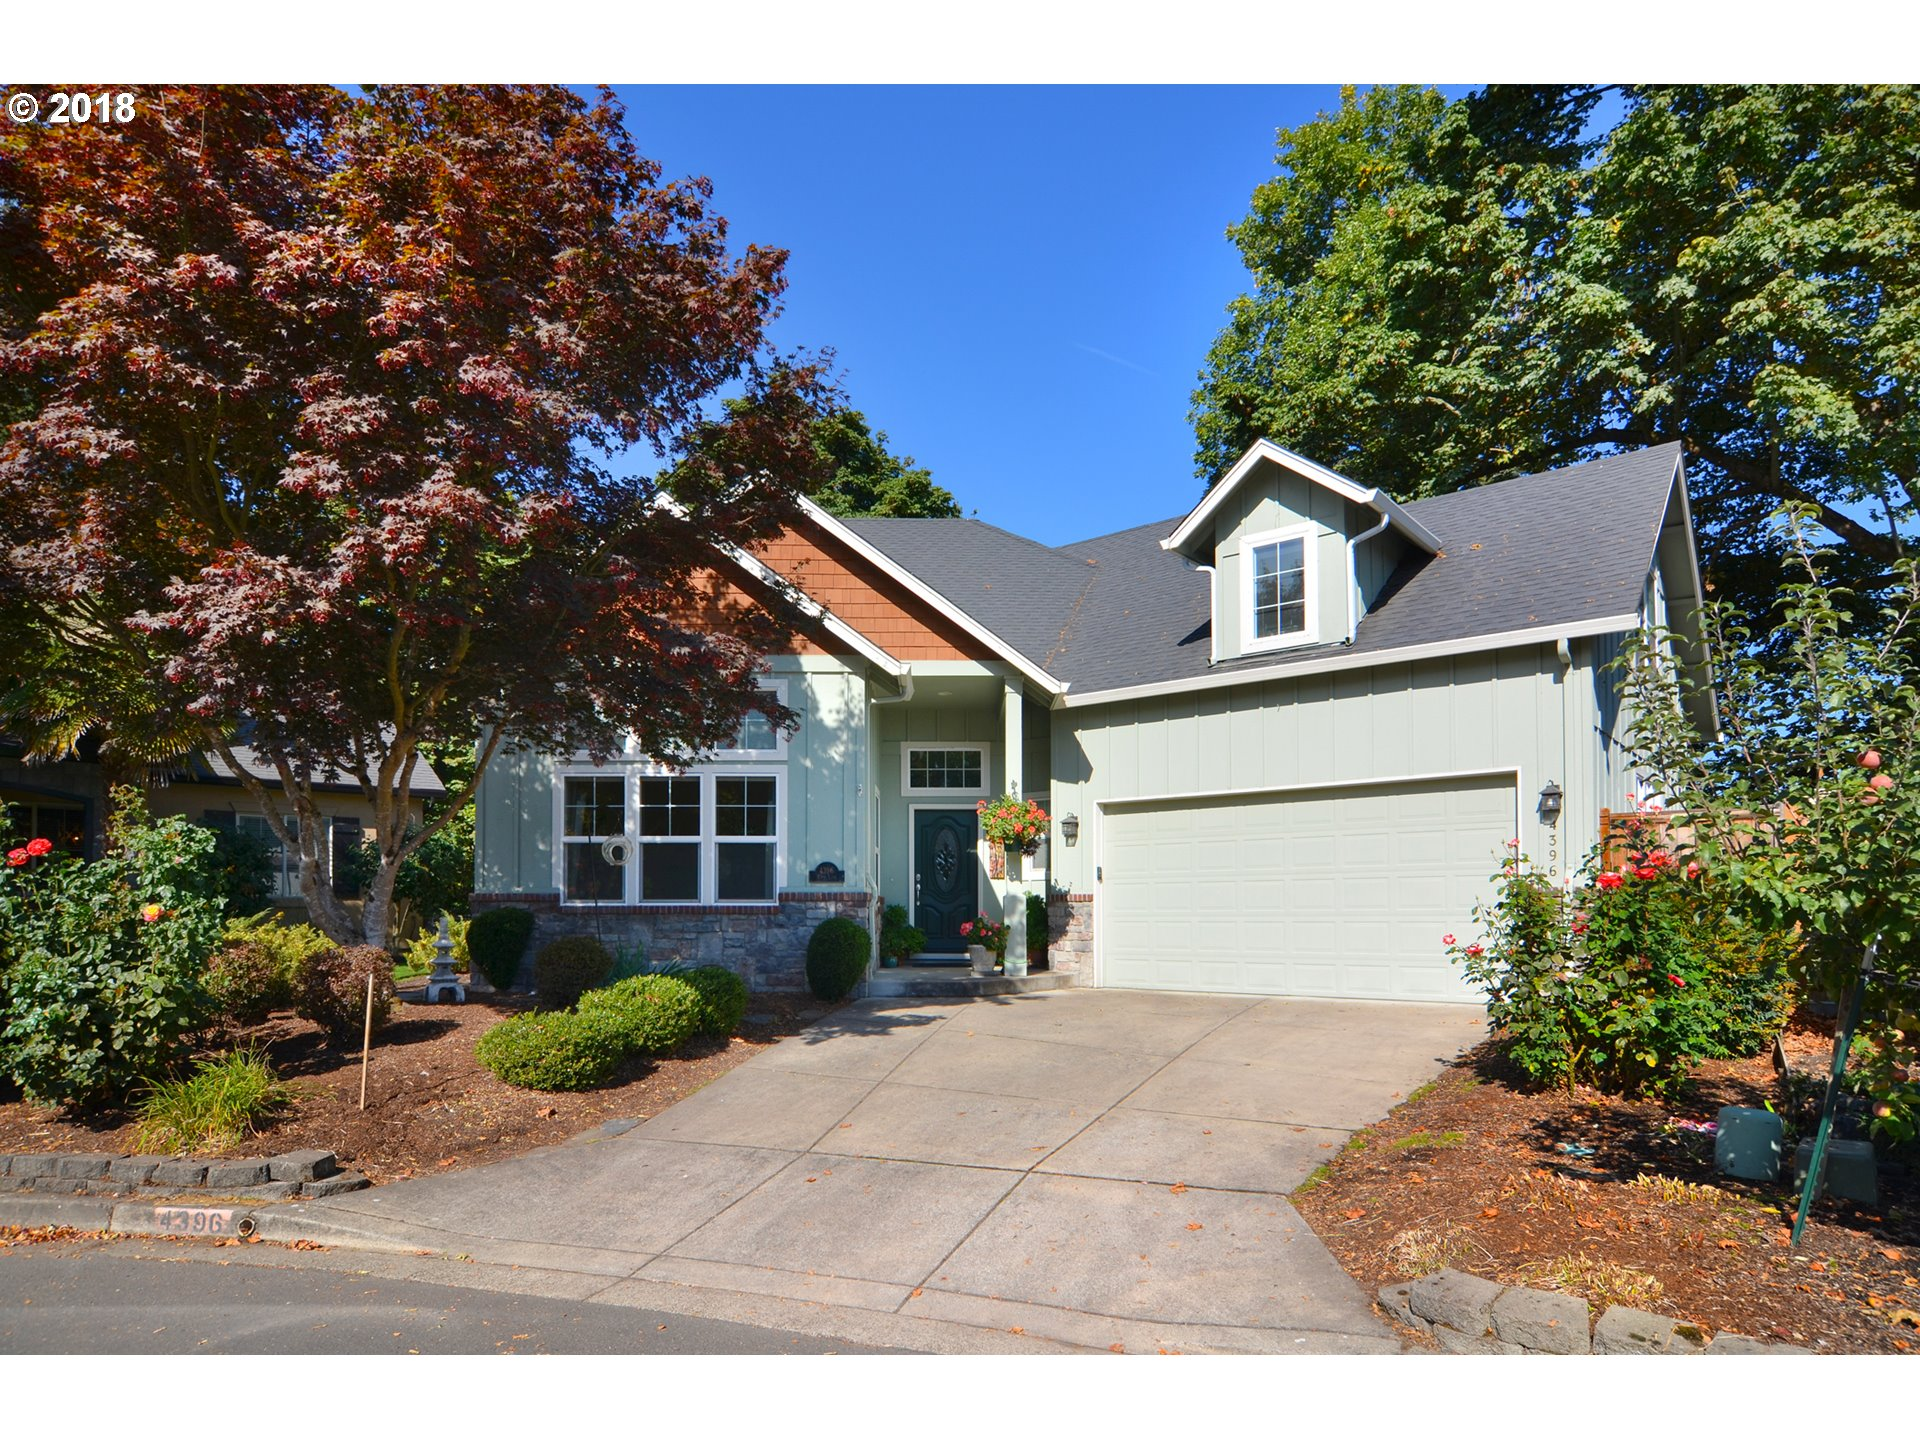 4396 KATY LN, Eugene OR 97404